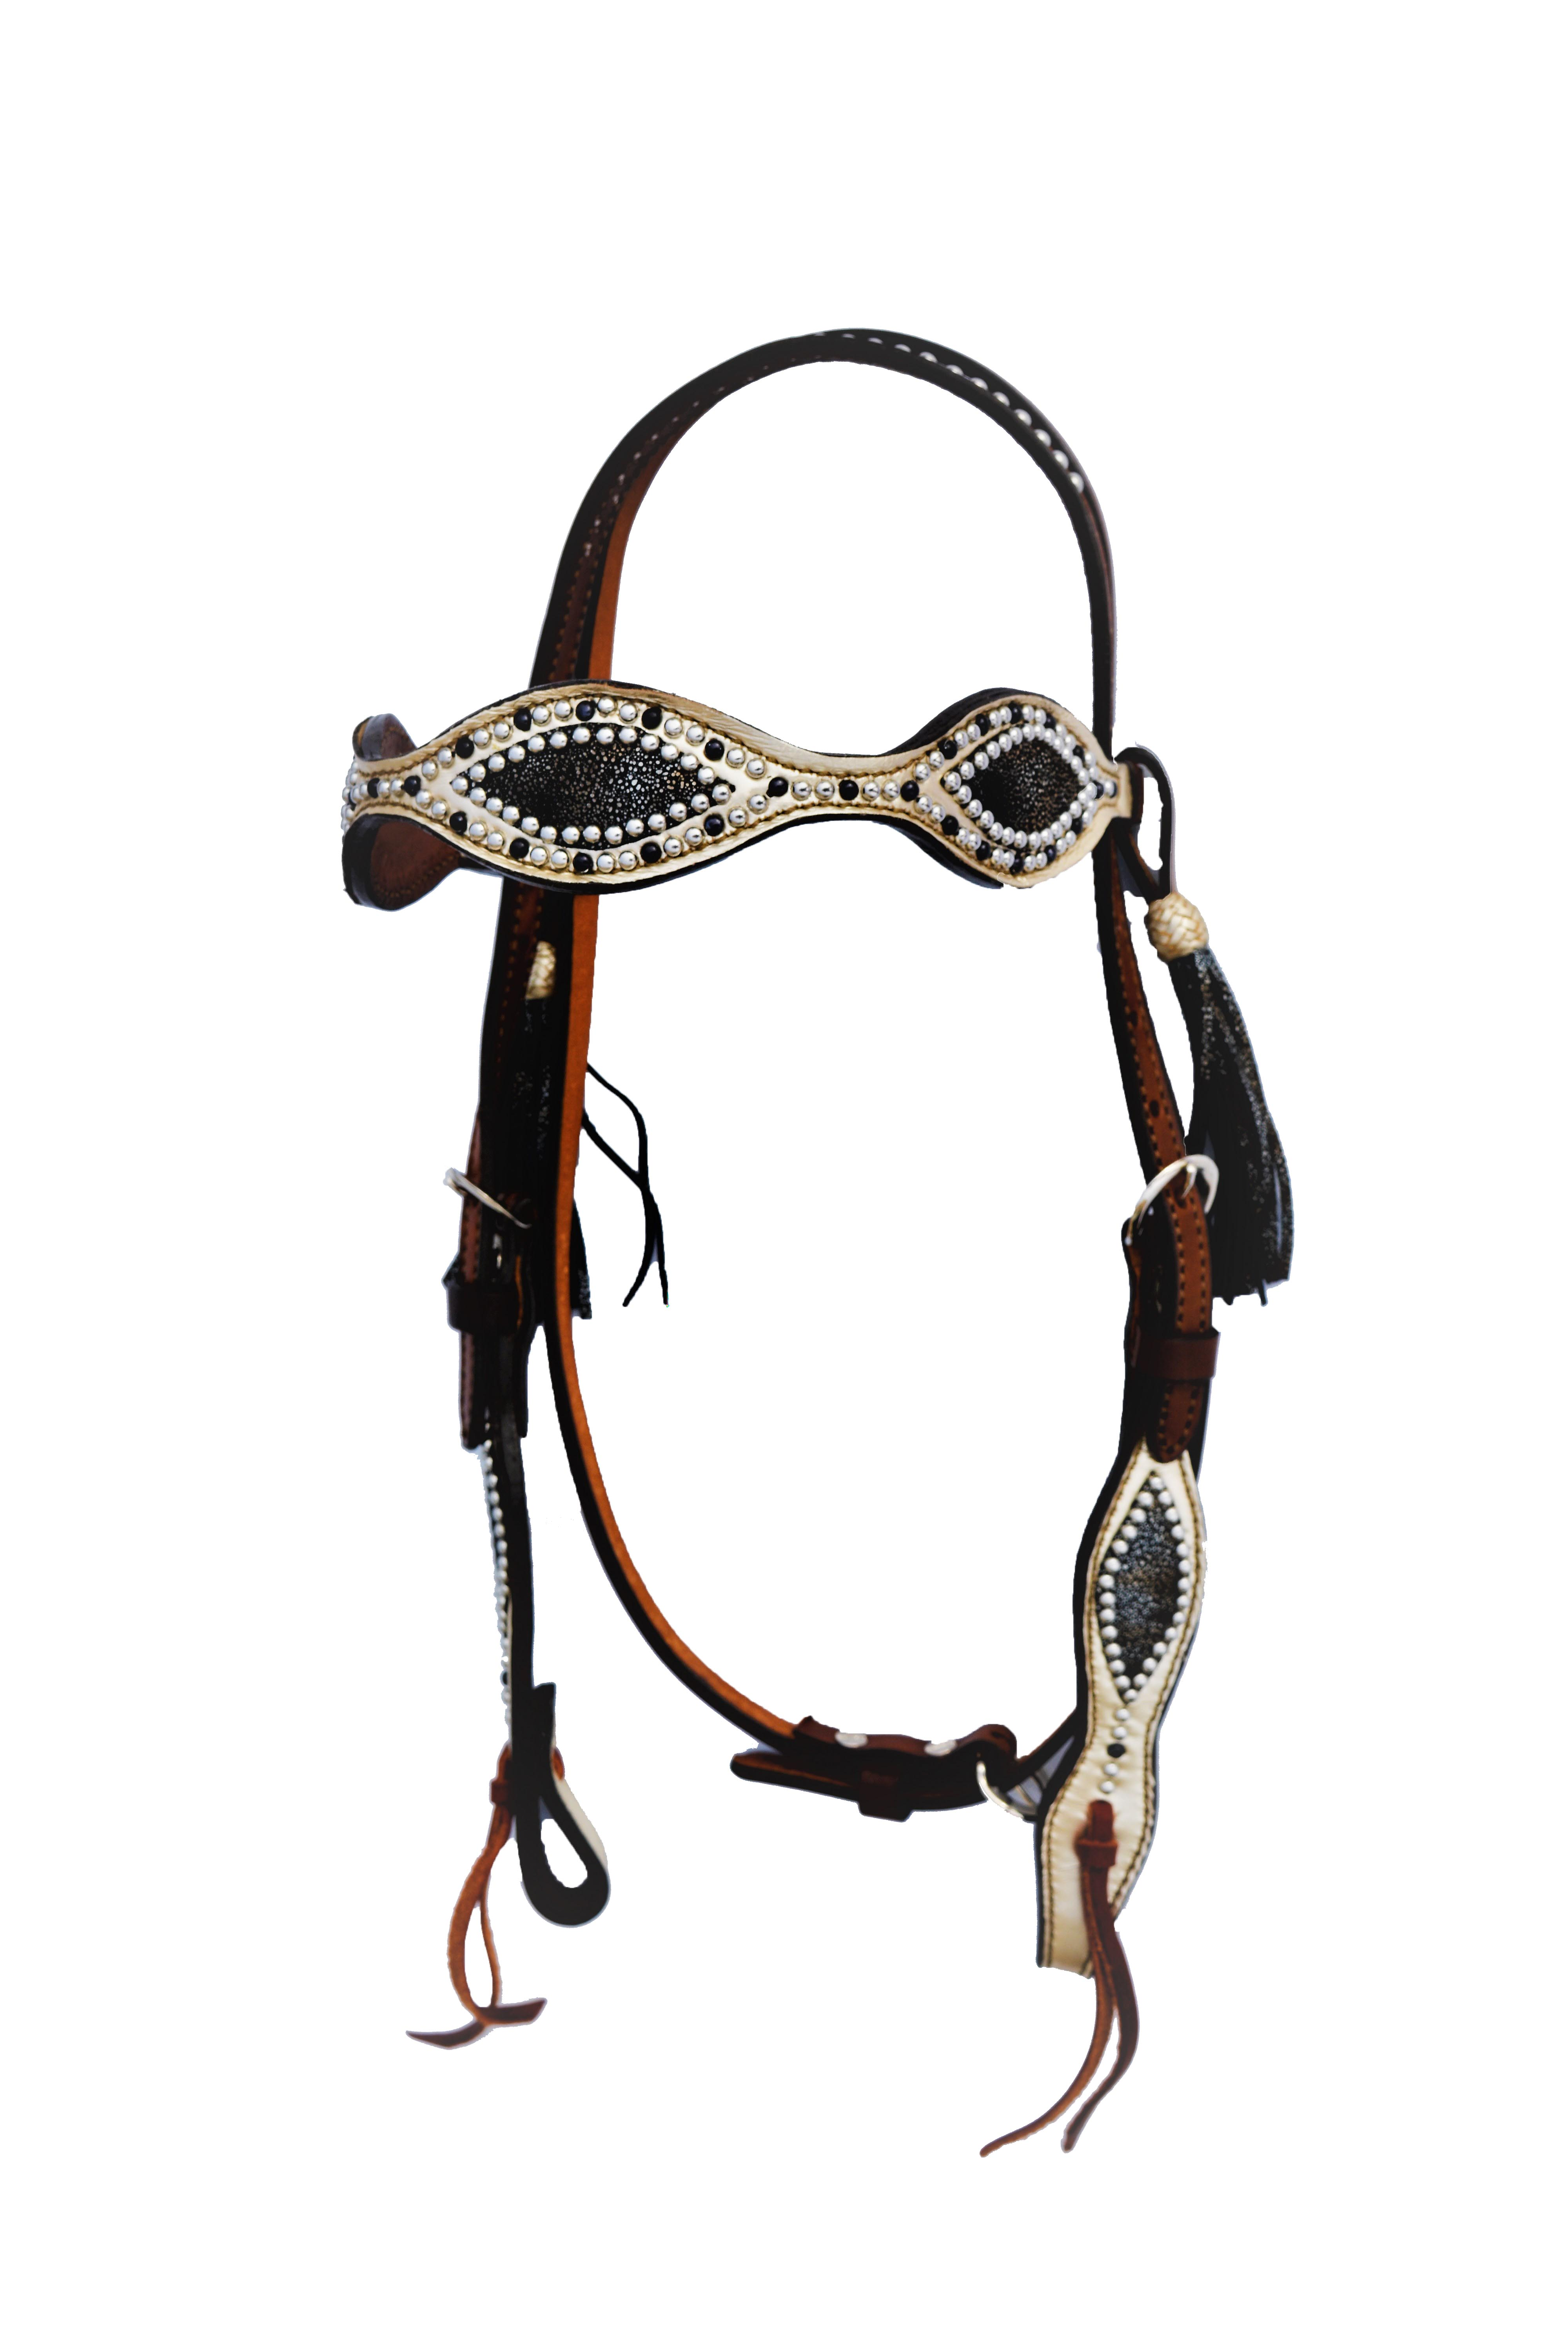 2265-BM Scalloped Headstall with Metallic & Black Metal overlays